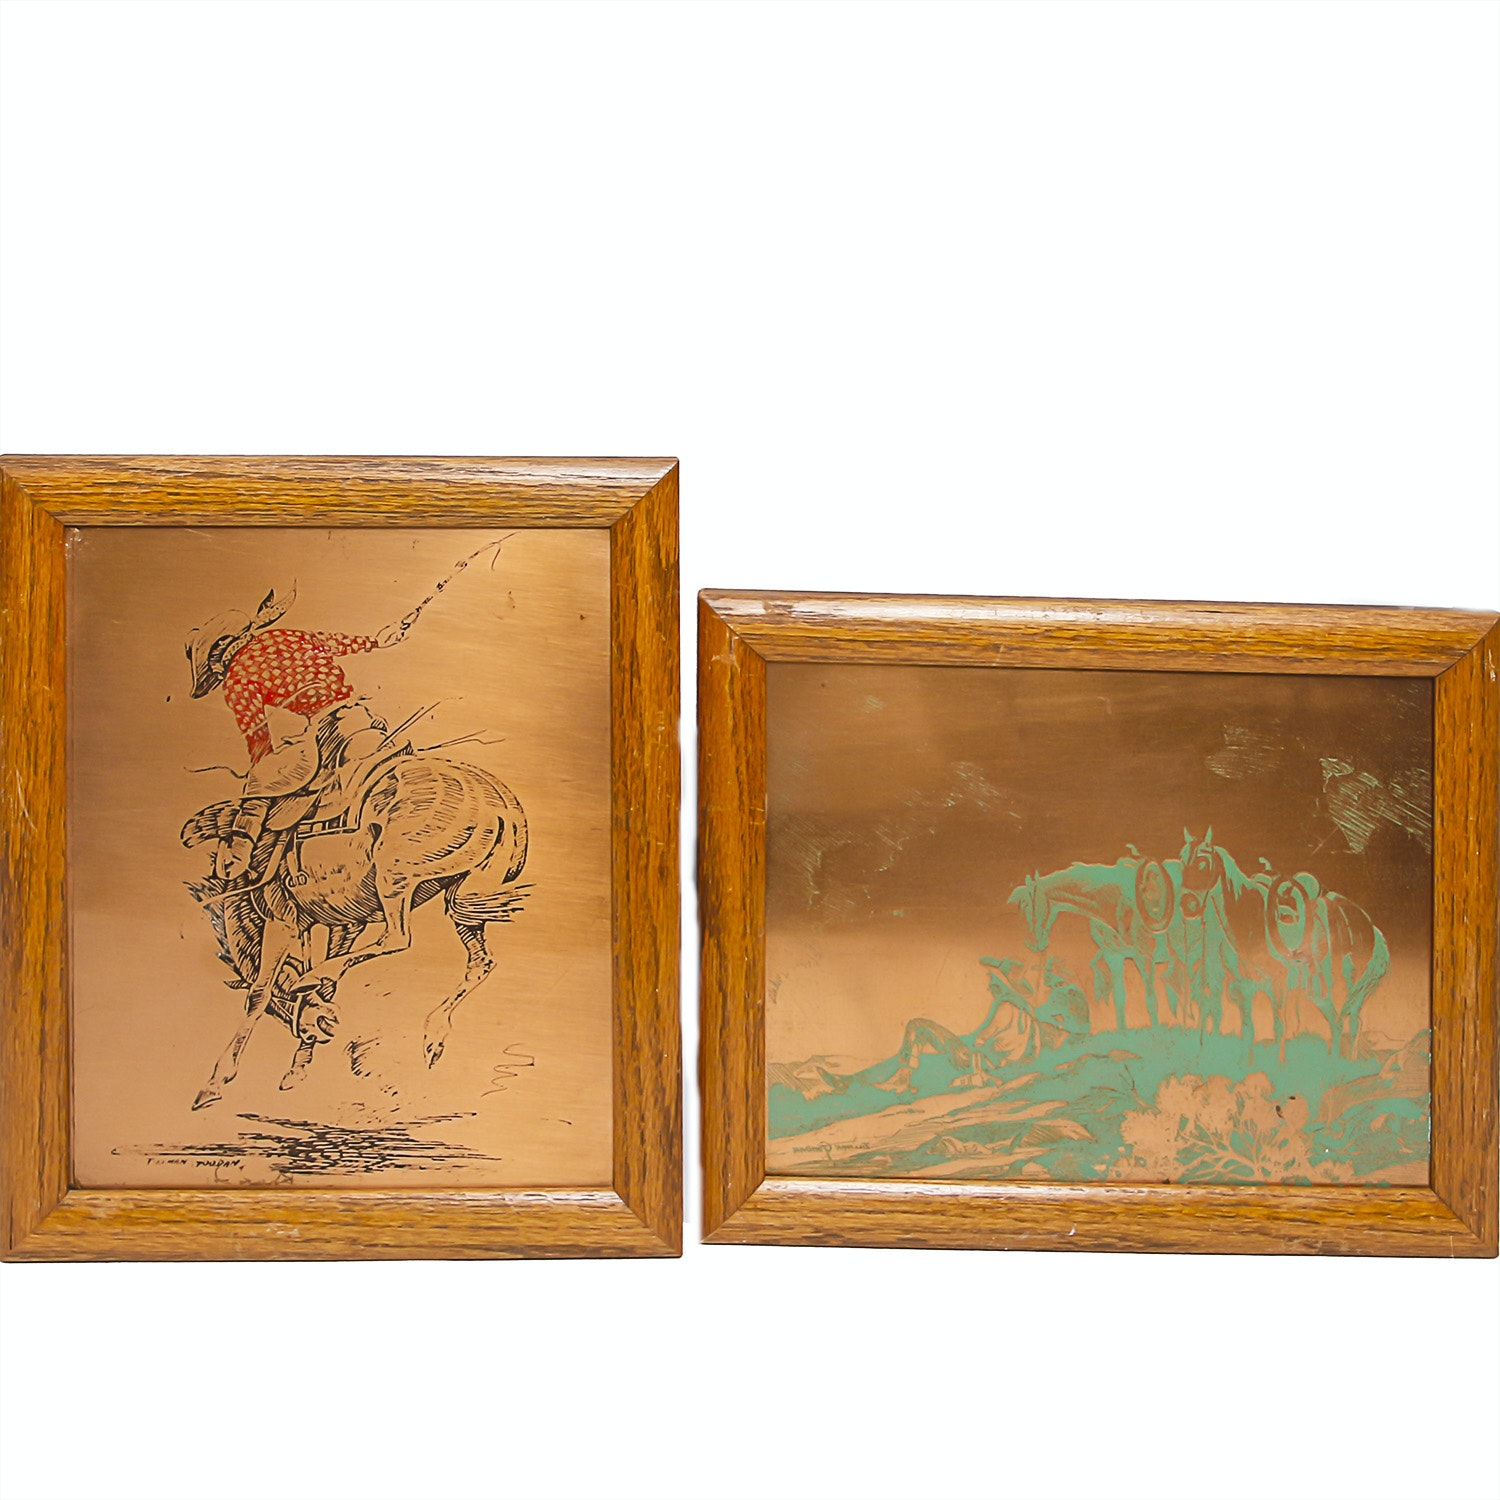 Pair of Tillman Goodan Framed Etched and Printed Copper Plates